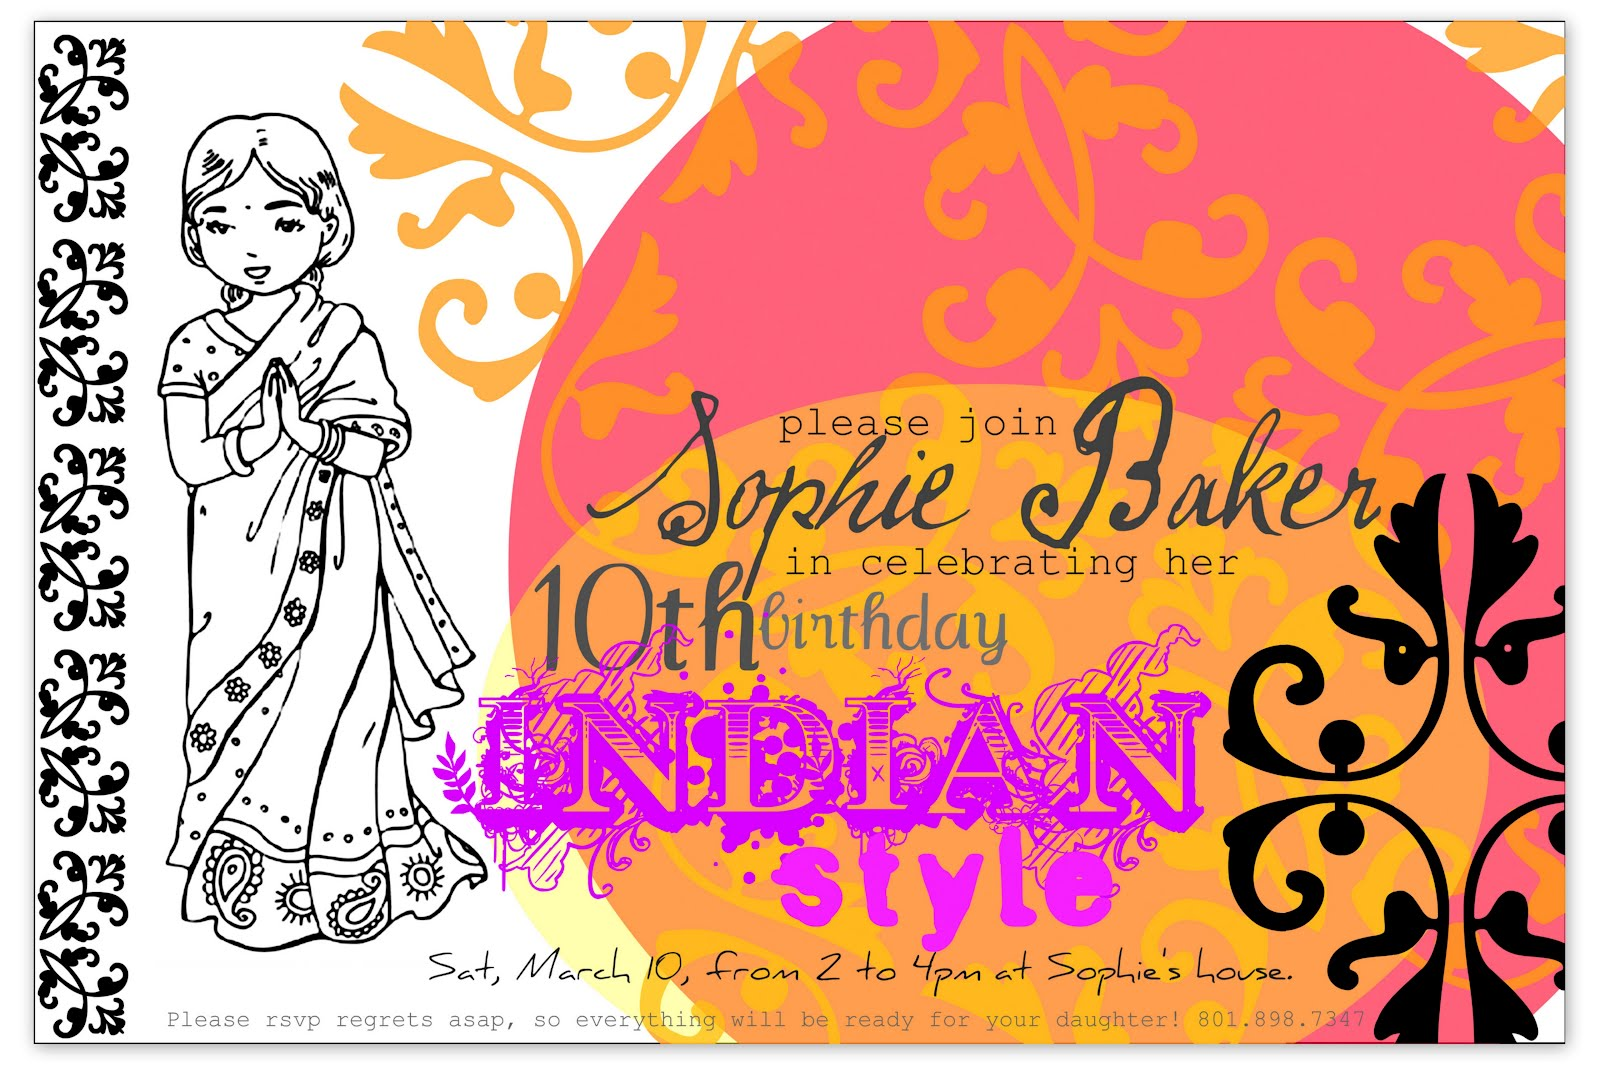 restlessrisa: Indian / Bollywood Party - Part 1 {invitations}